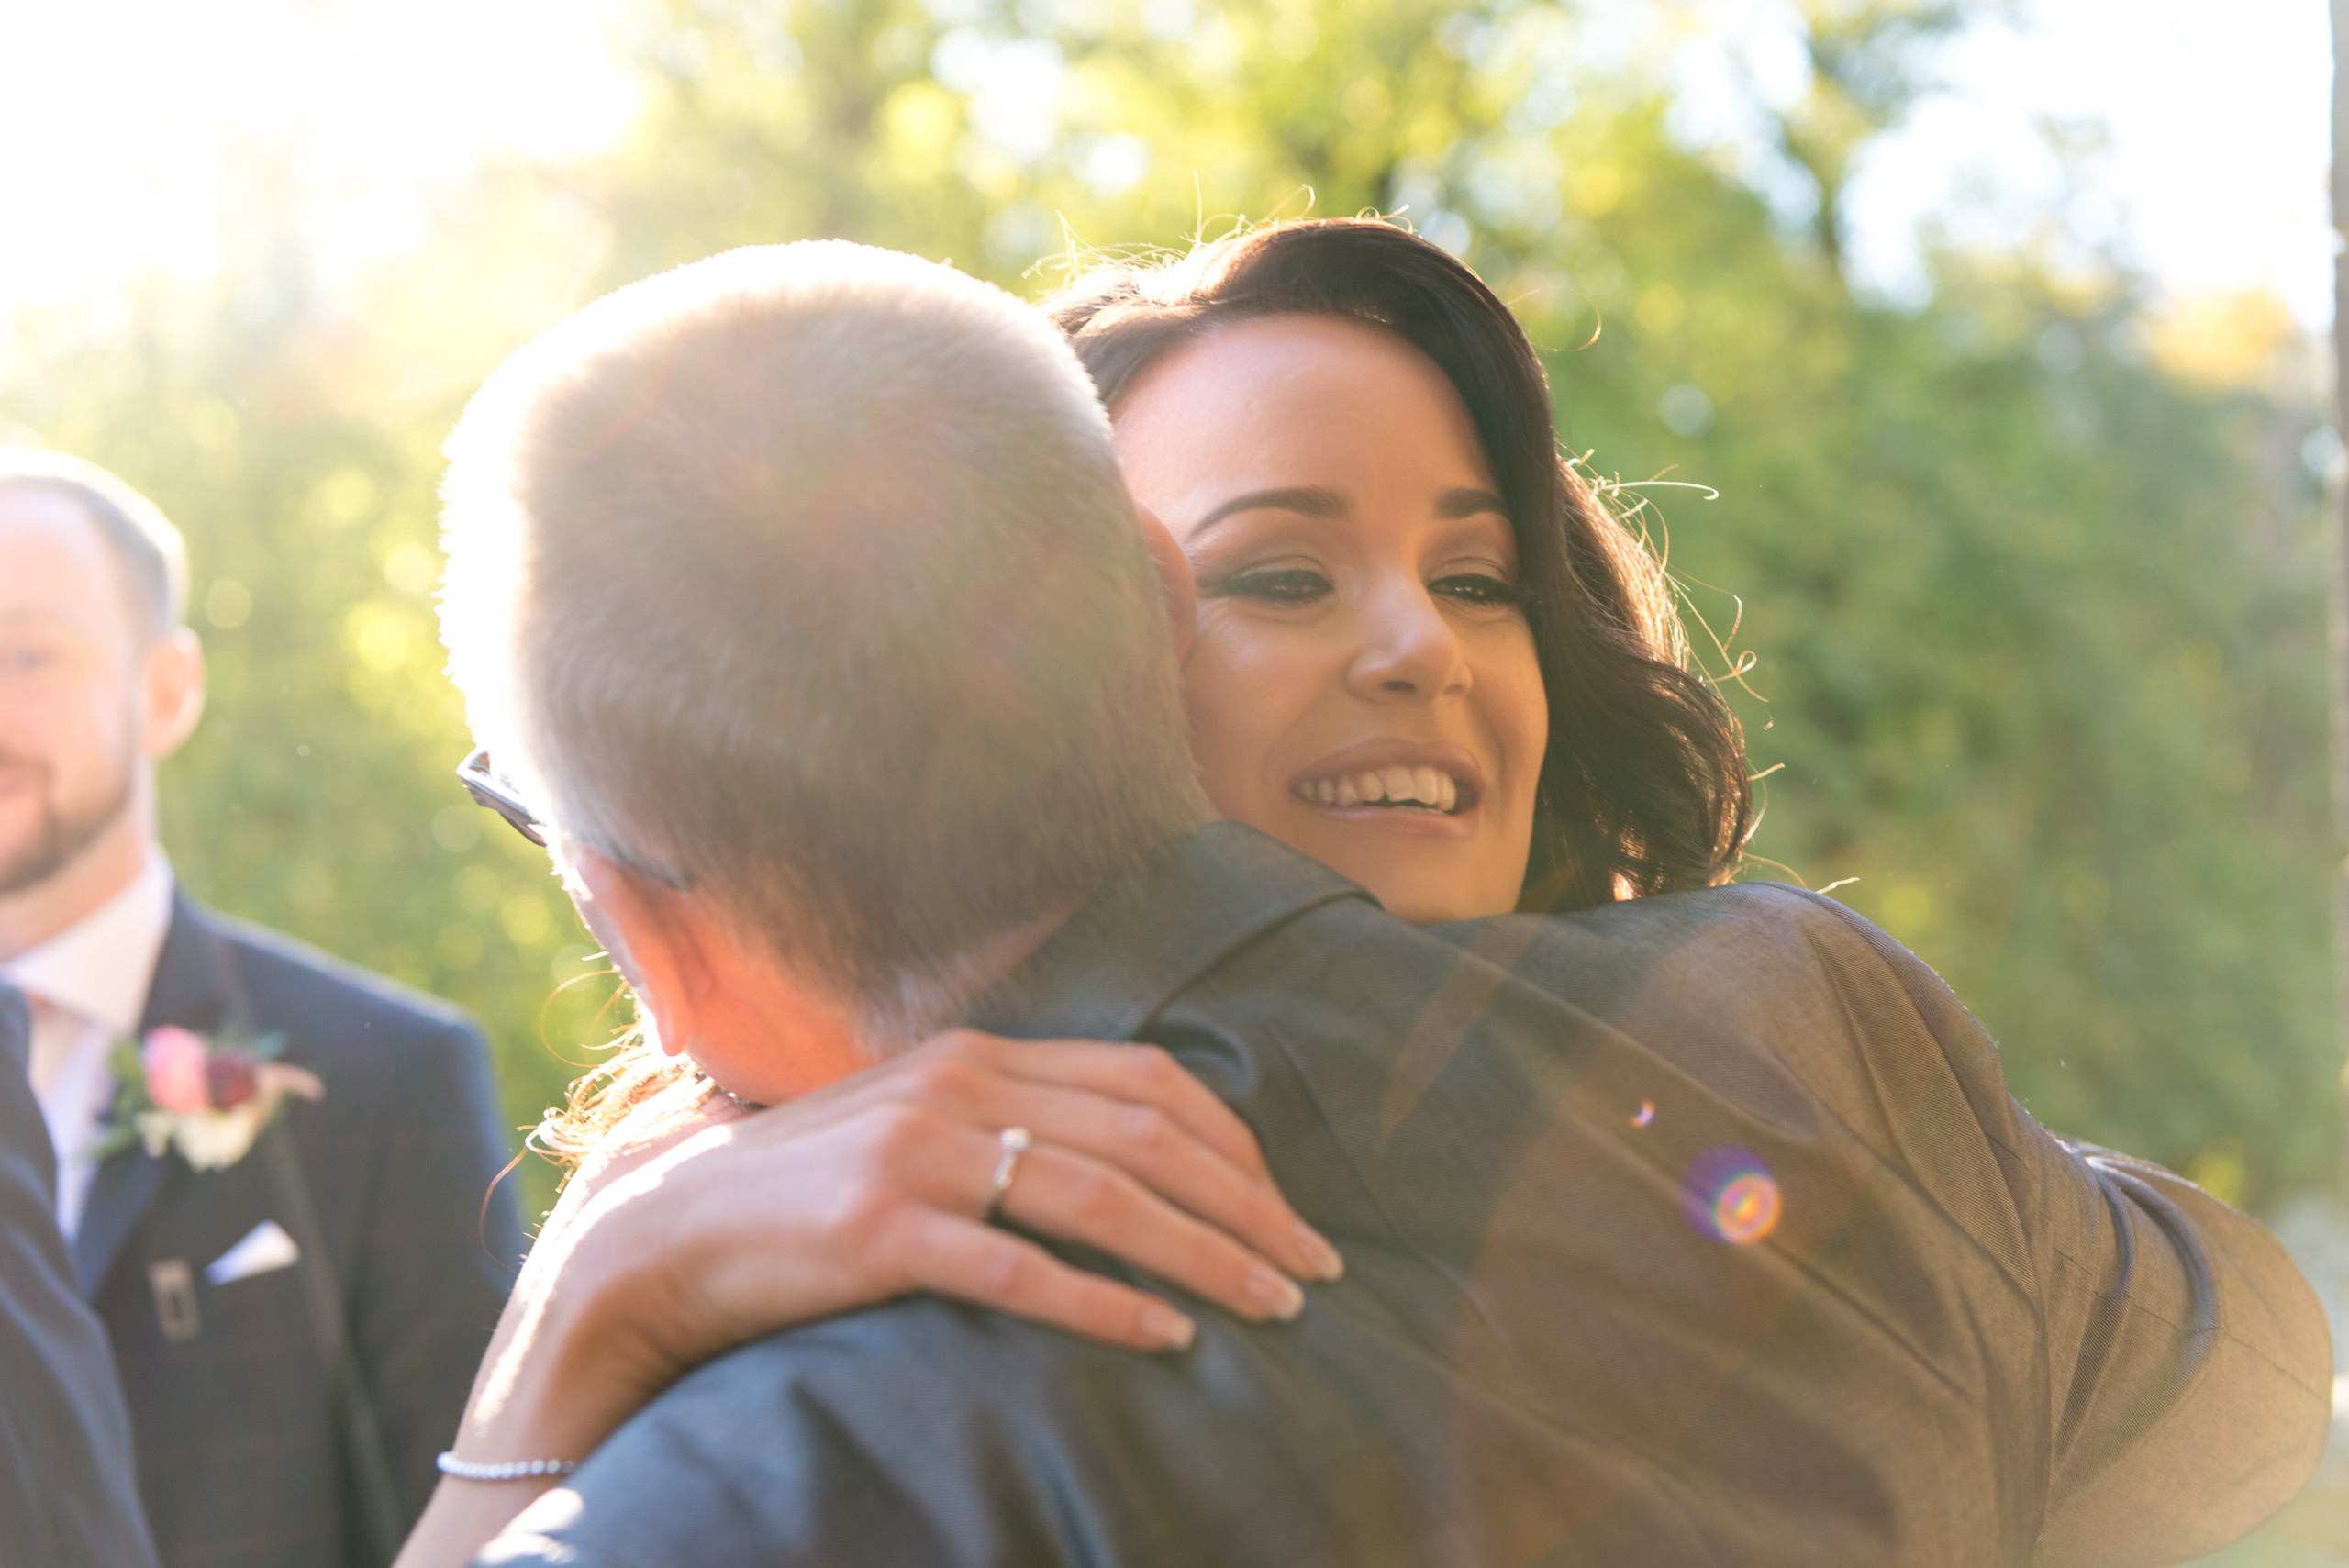 Photo of wedding day guest giving congratulations to bride after wedding day ceremony